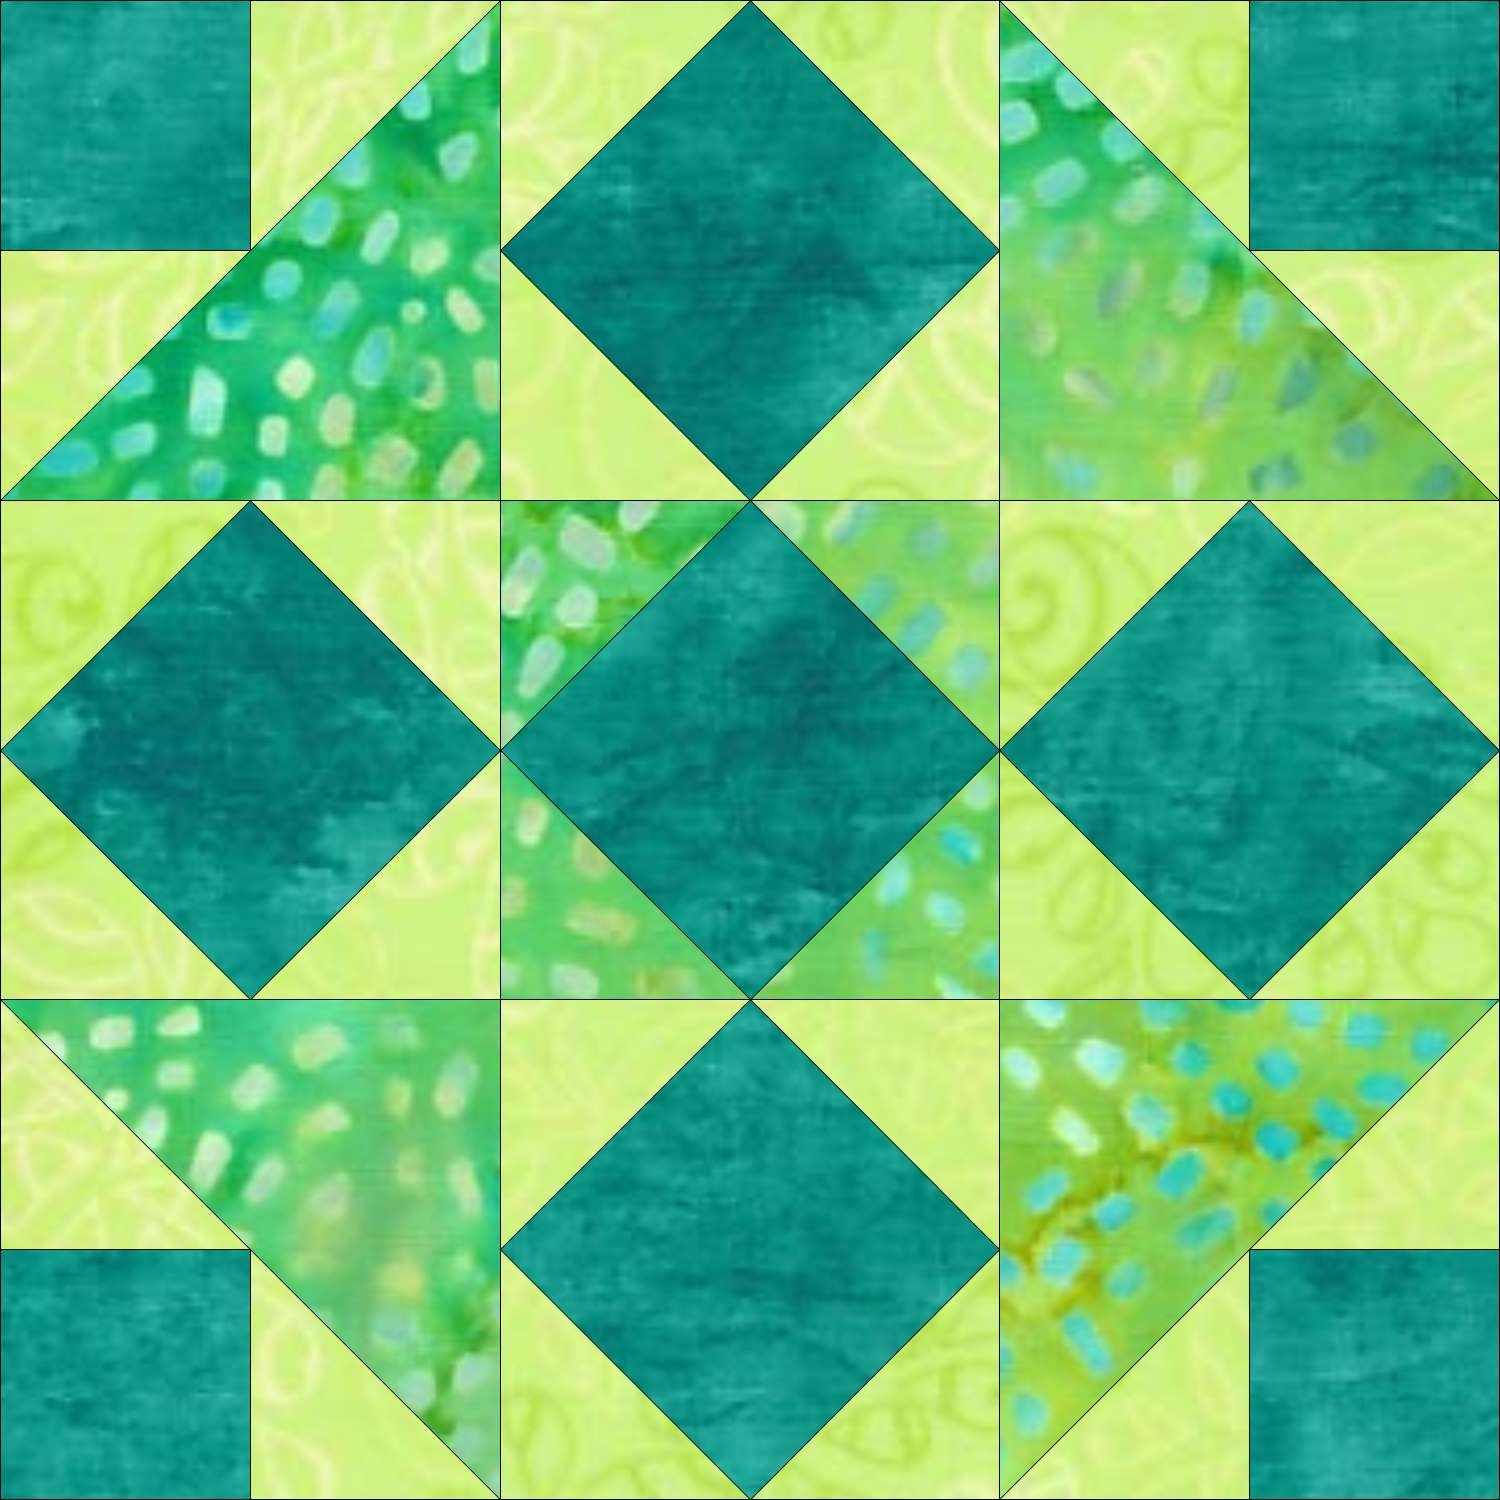 Five Spot quilt block design